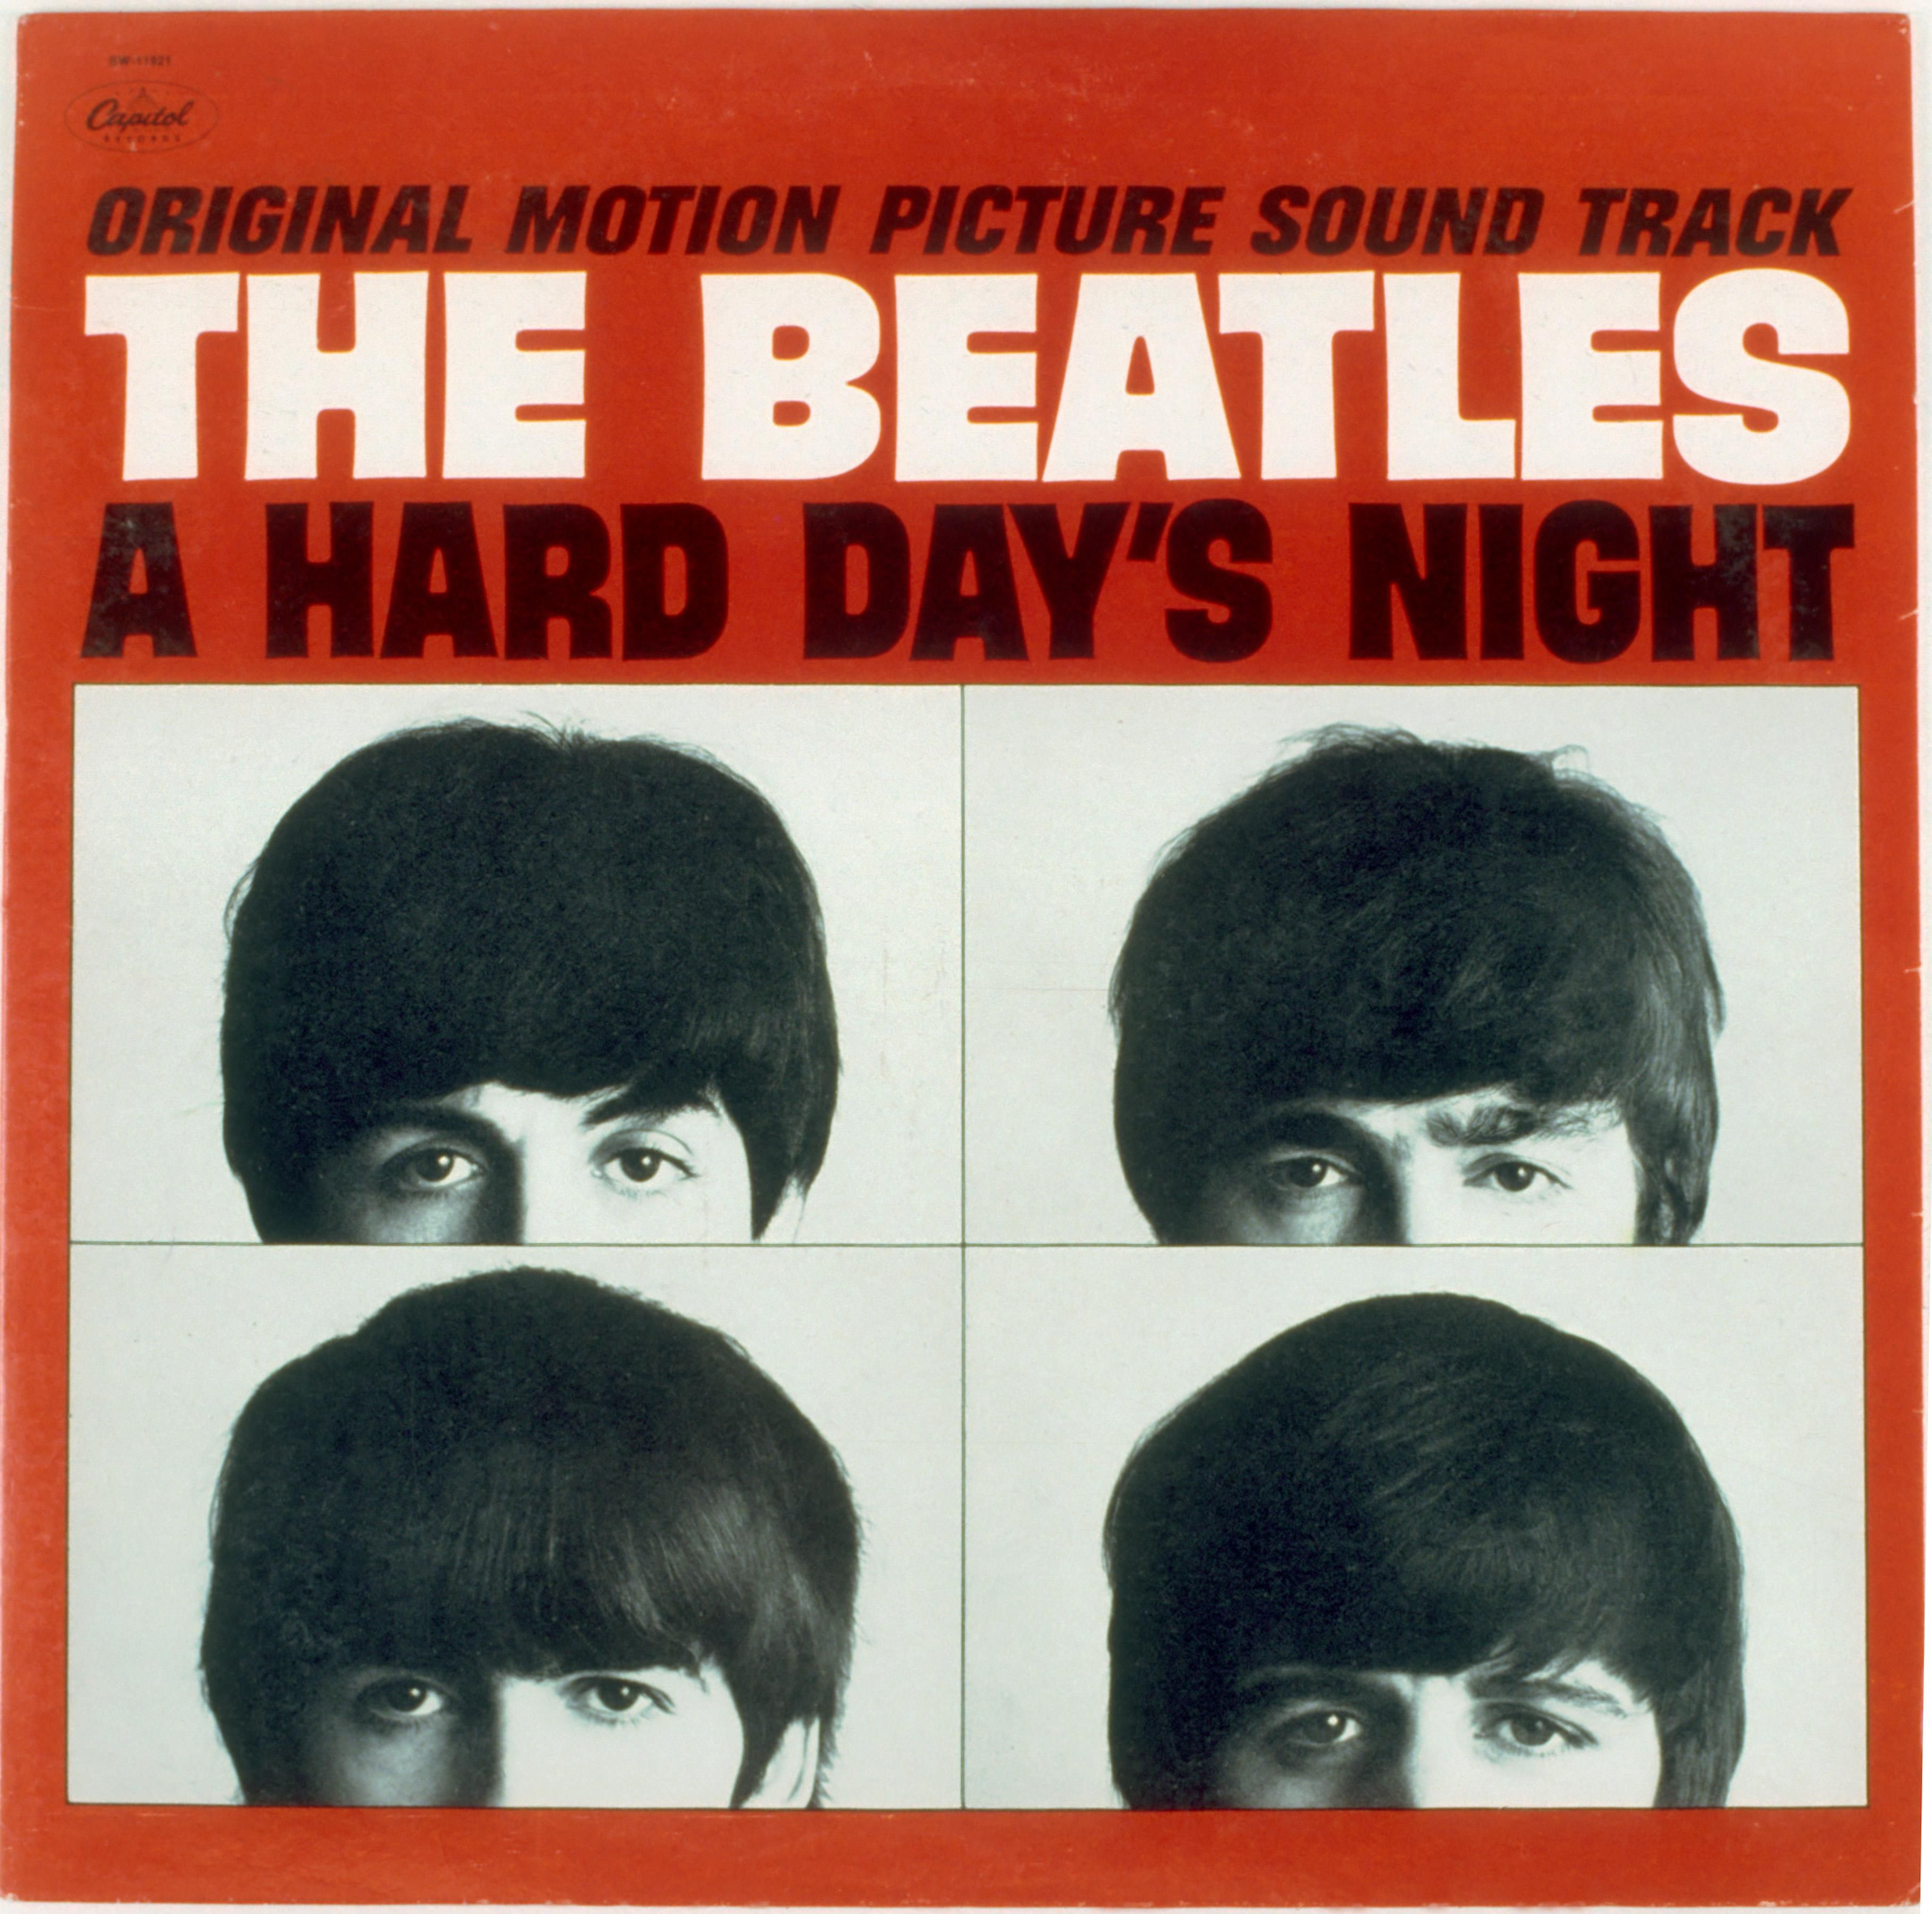 """The Beatles """"A Hard Day's Night"""" Album Cover"""